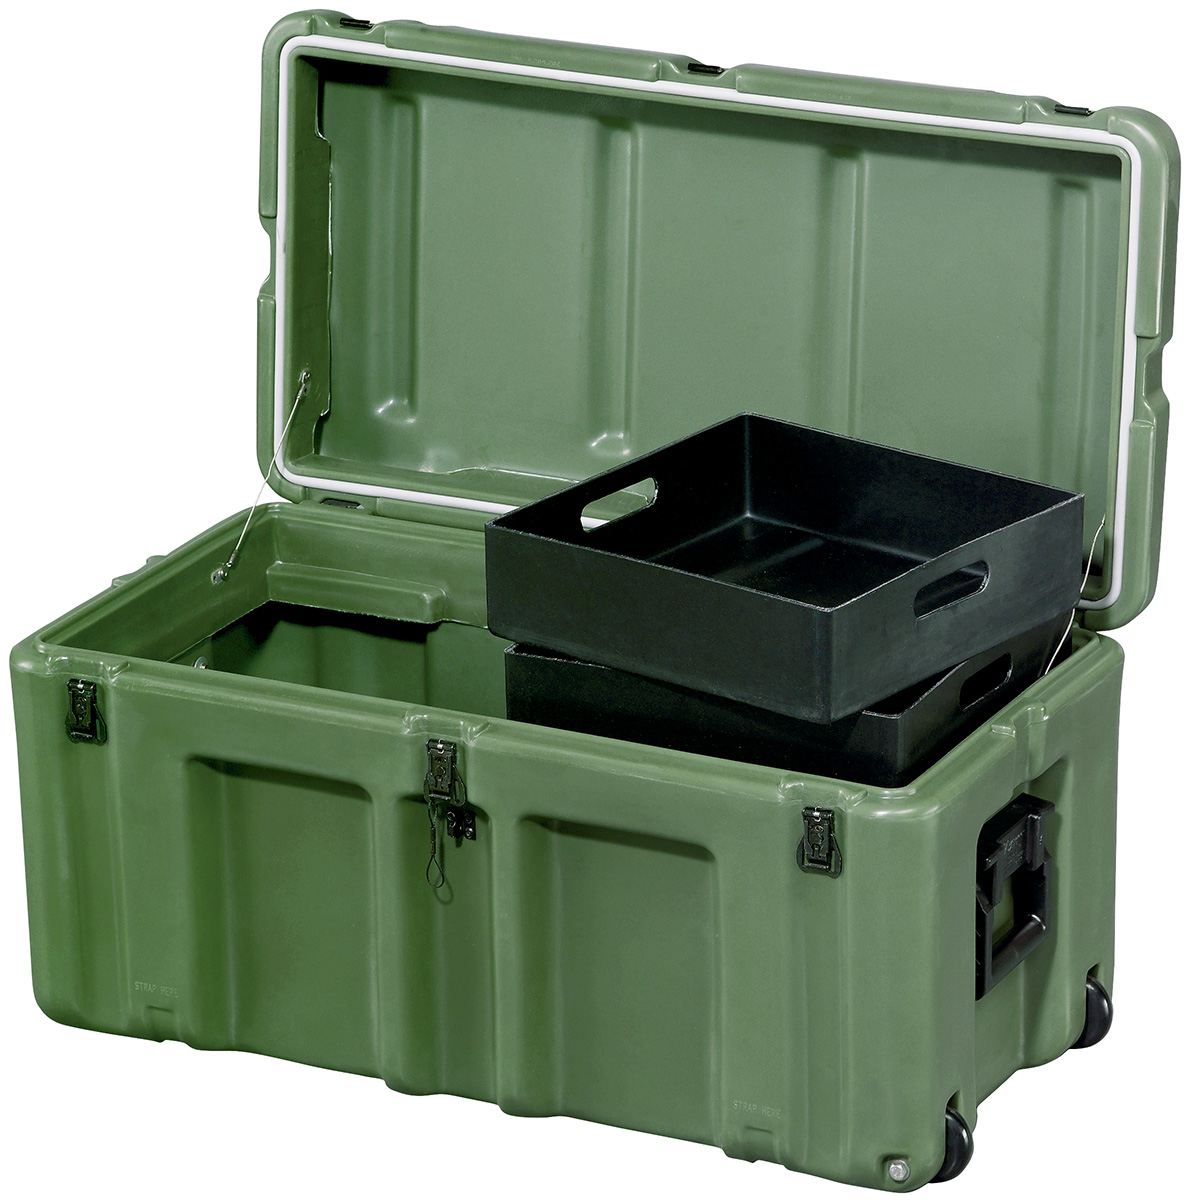 pelican peli products 472 FTLK LG usa military large foot locker